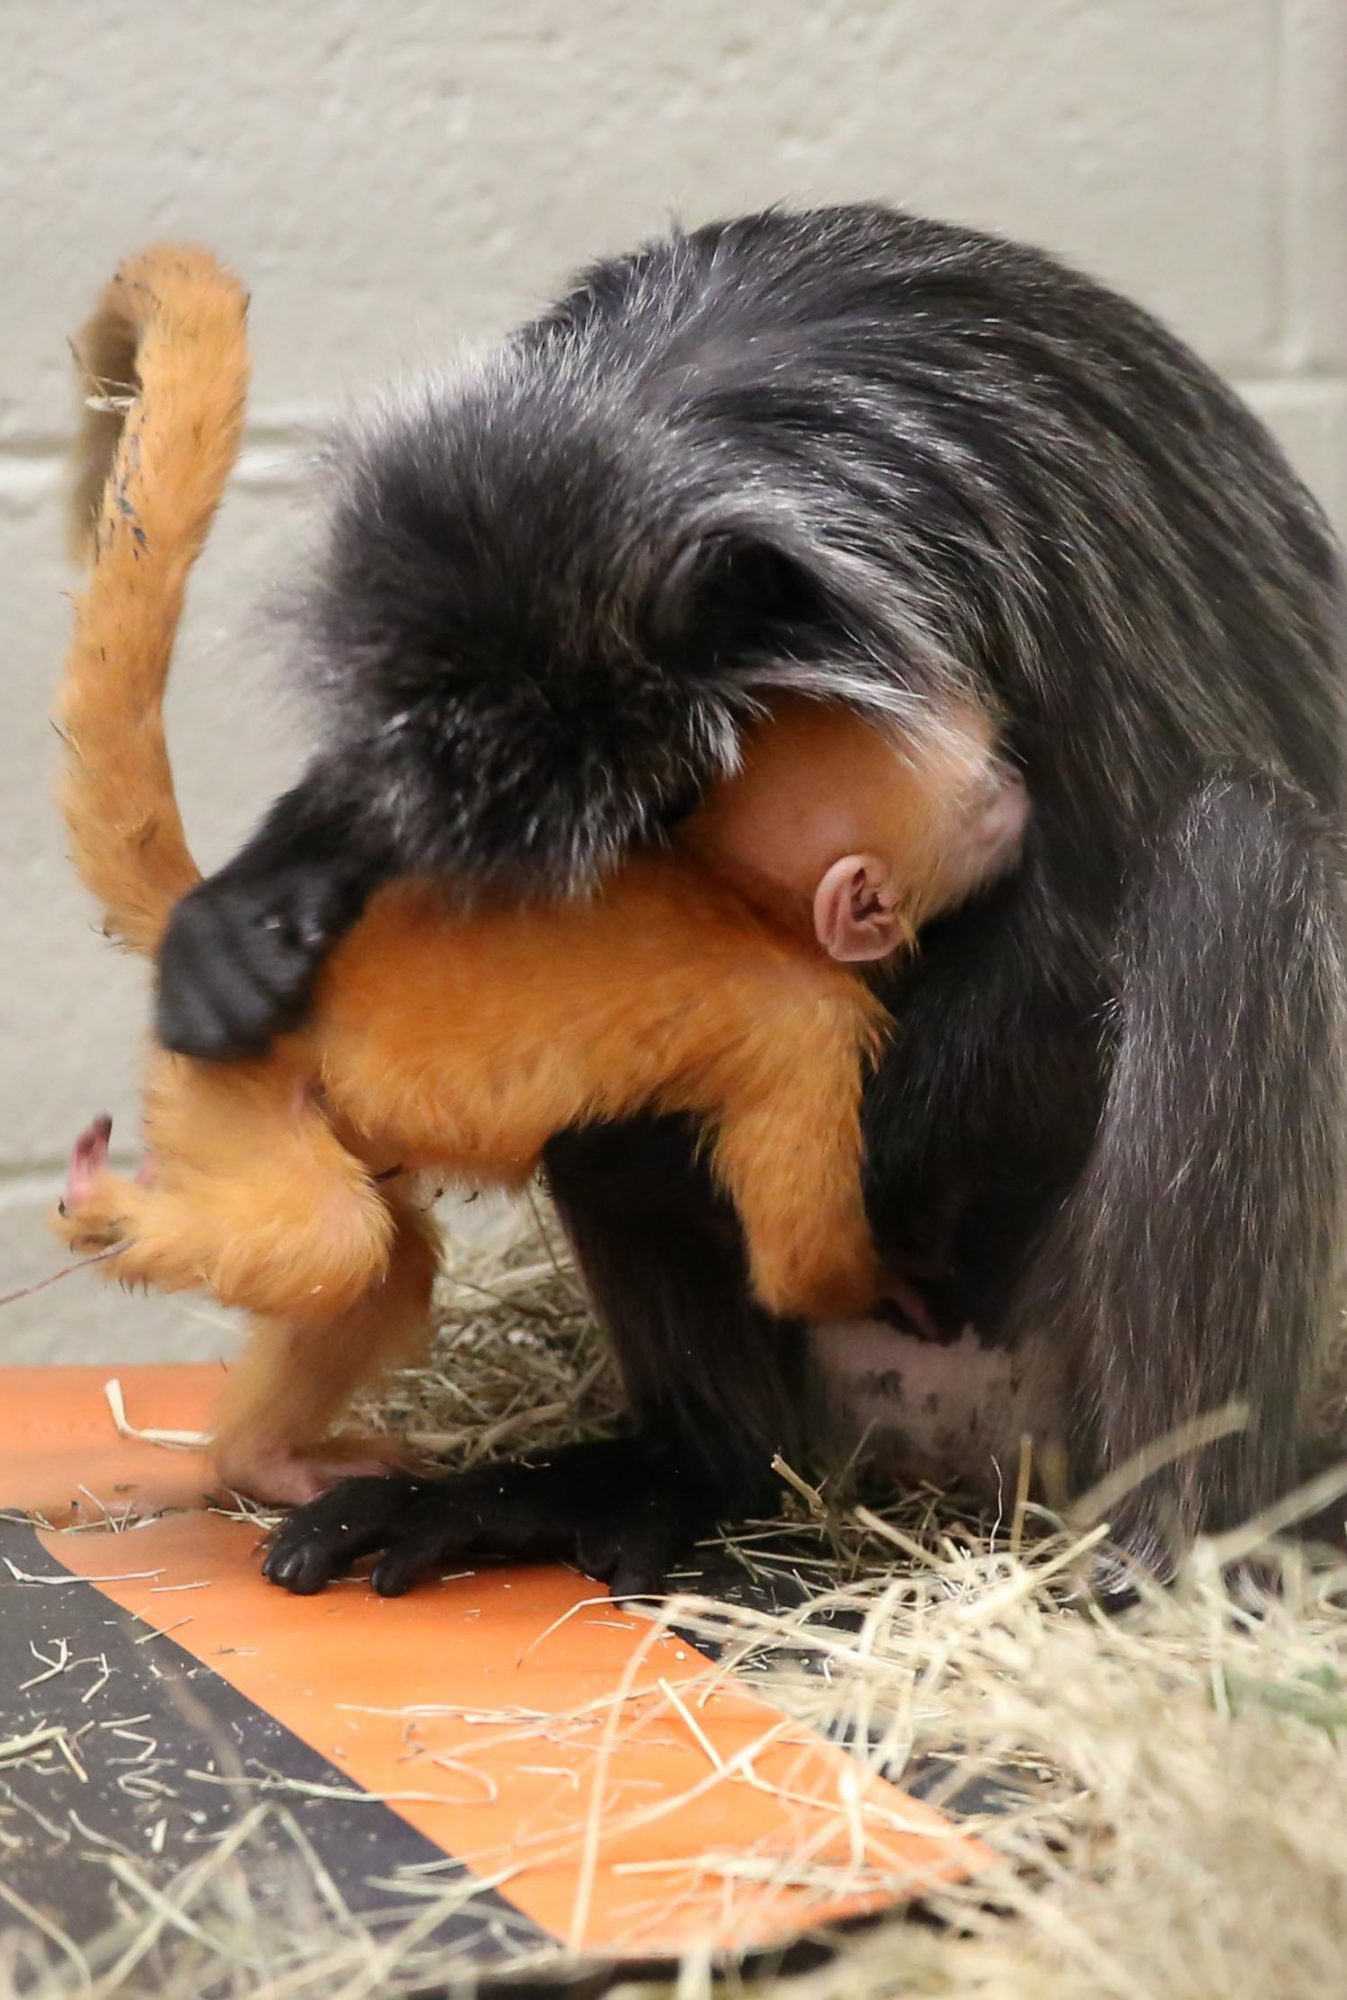 Santa Gifts Zoo Knoxville Surprise Monkey Baby For Christmas